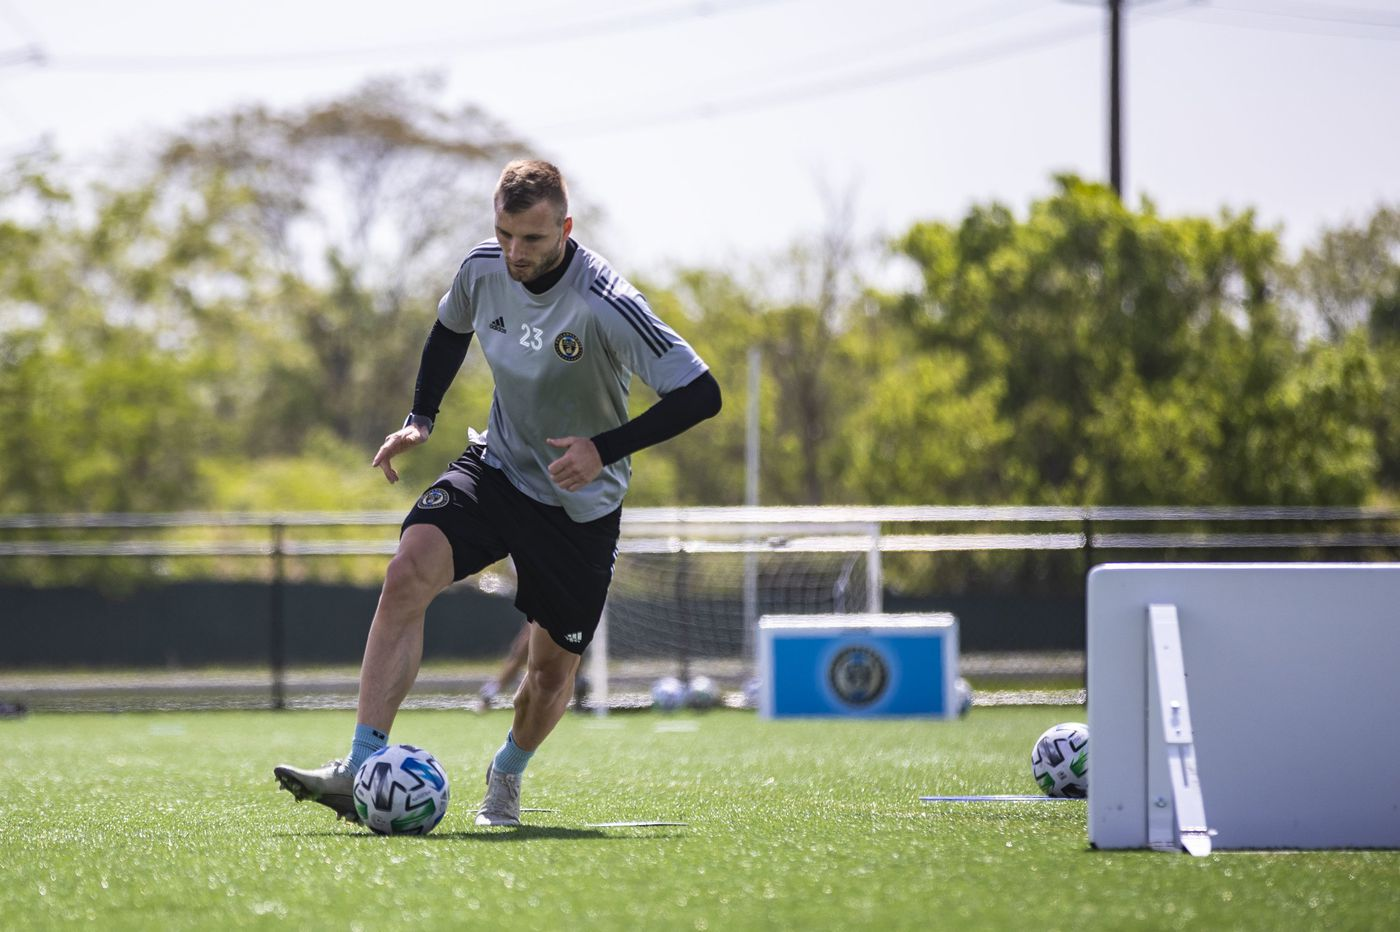 Union's Kacper Przybylko ready to play again after overcoming coronavirus, but he doesn't like MLS's Orlando plan